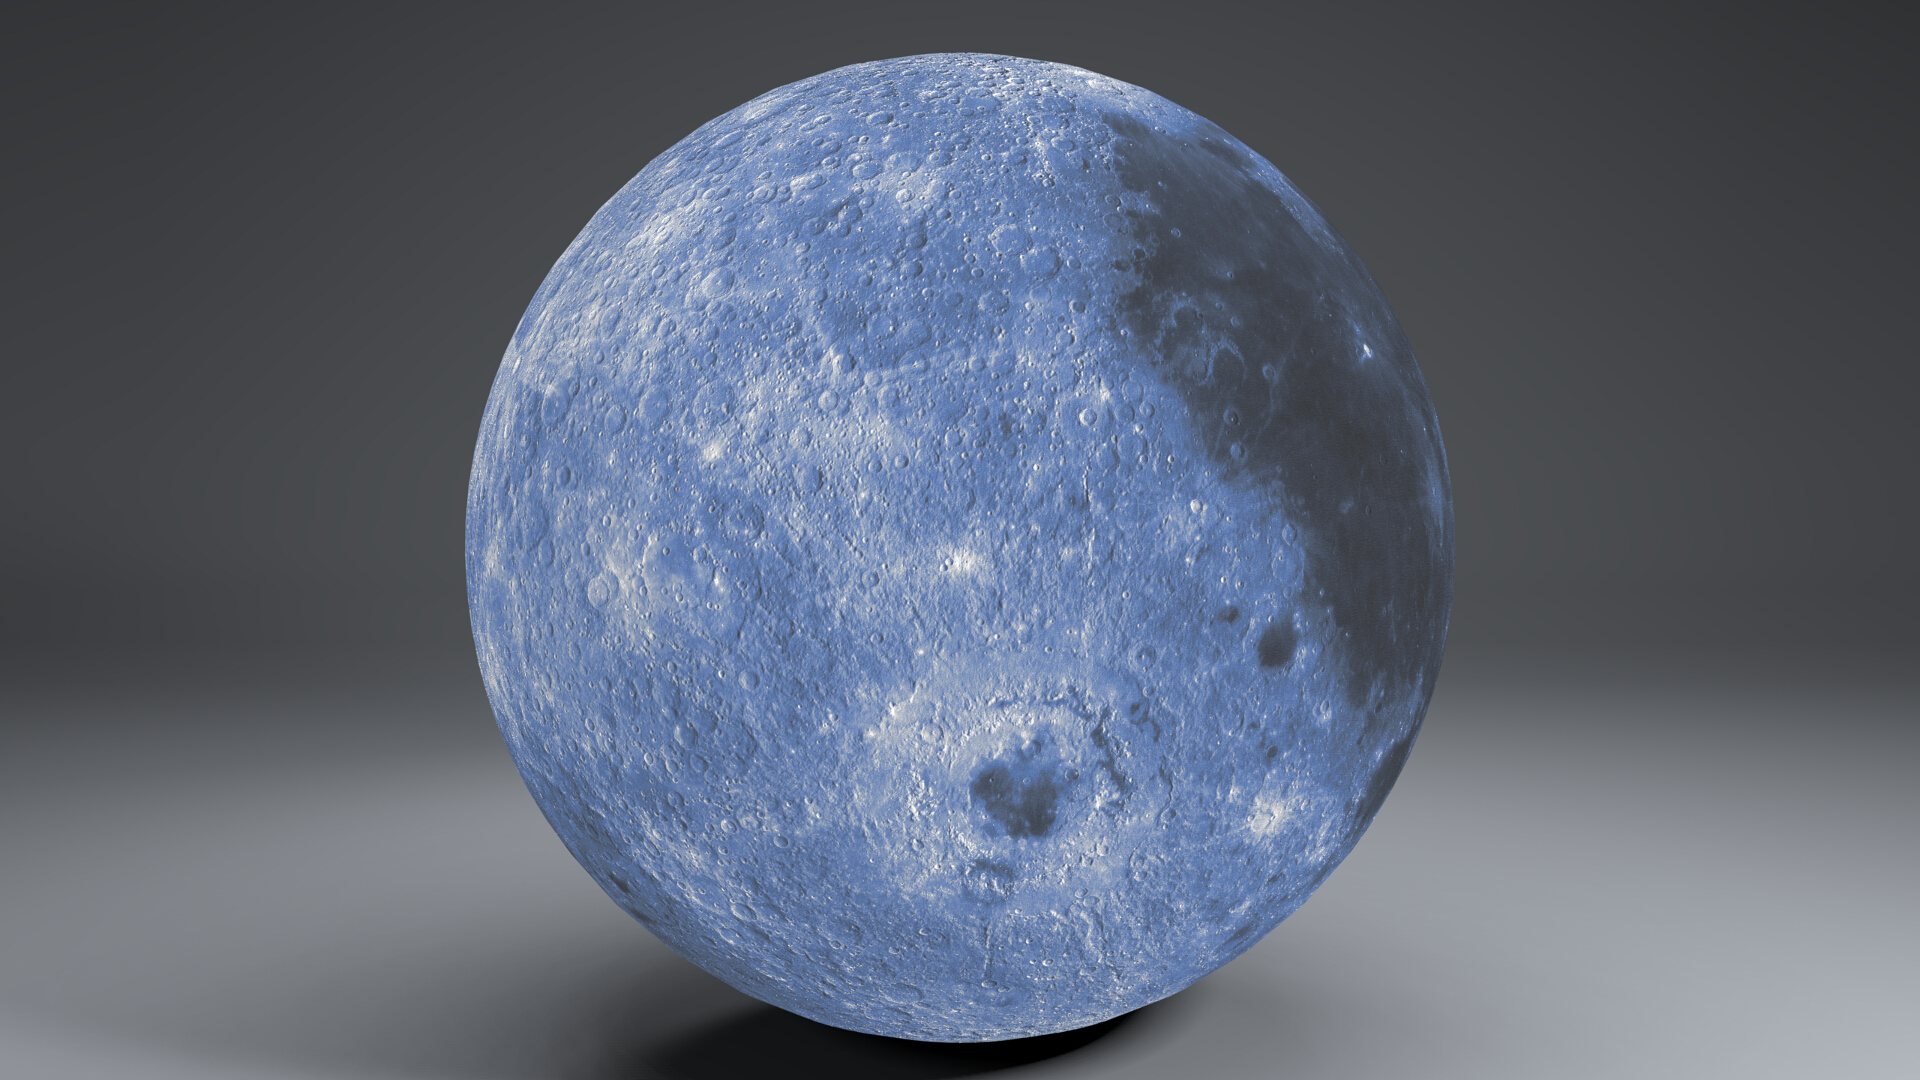 blue moonglobe 11k 3d model 3ds fbx blend dae obj 221891